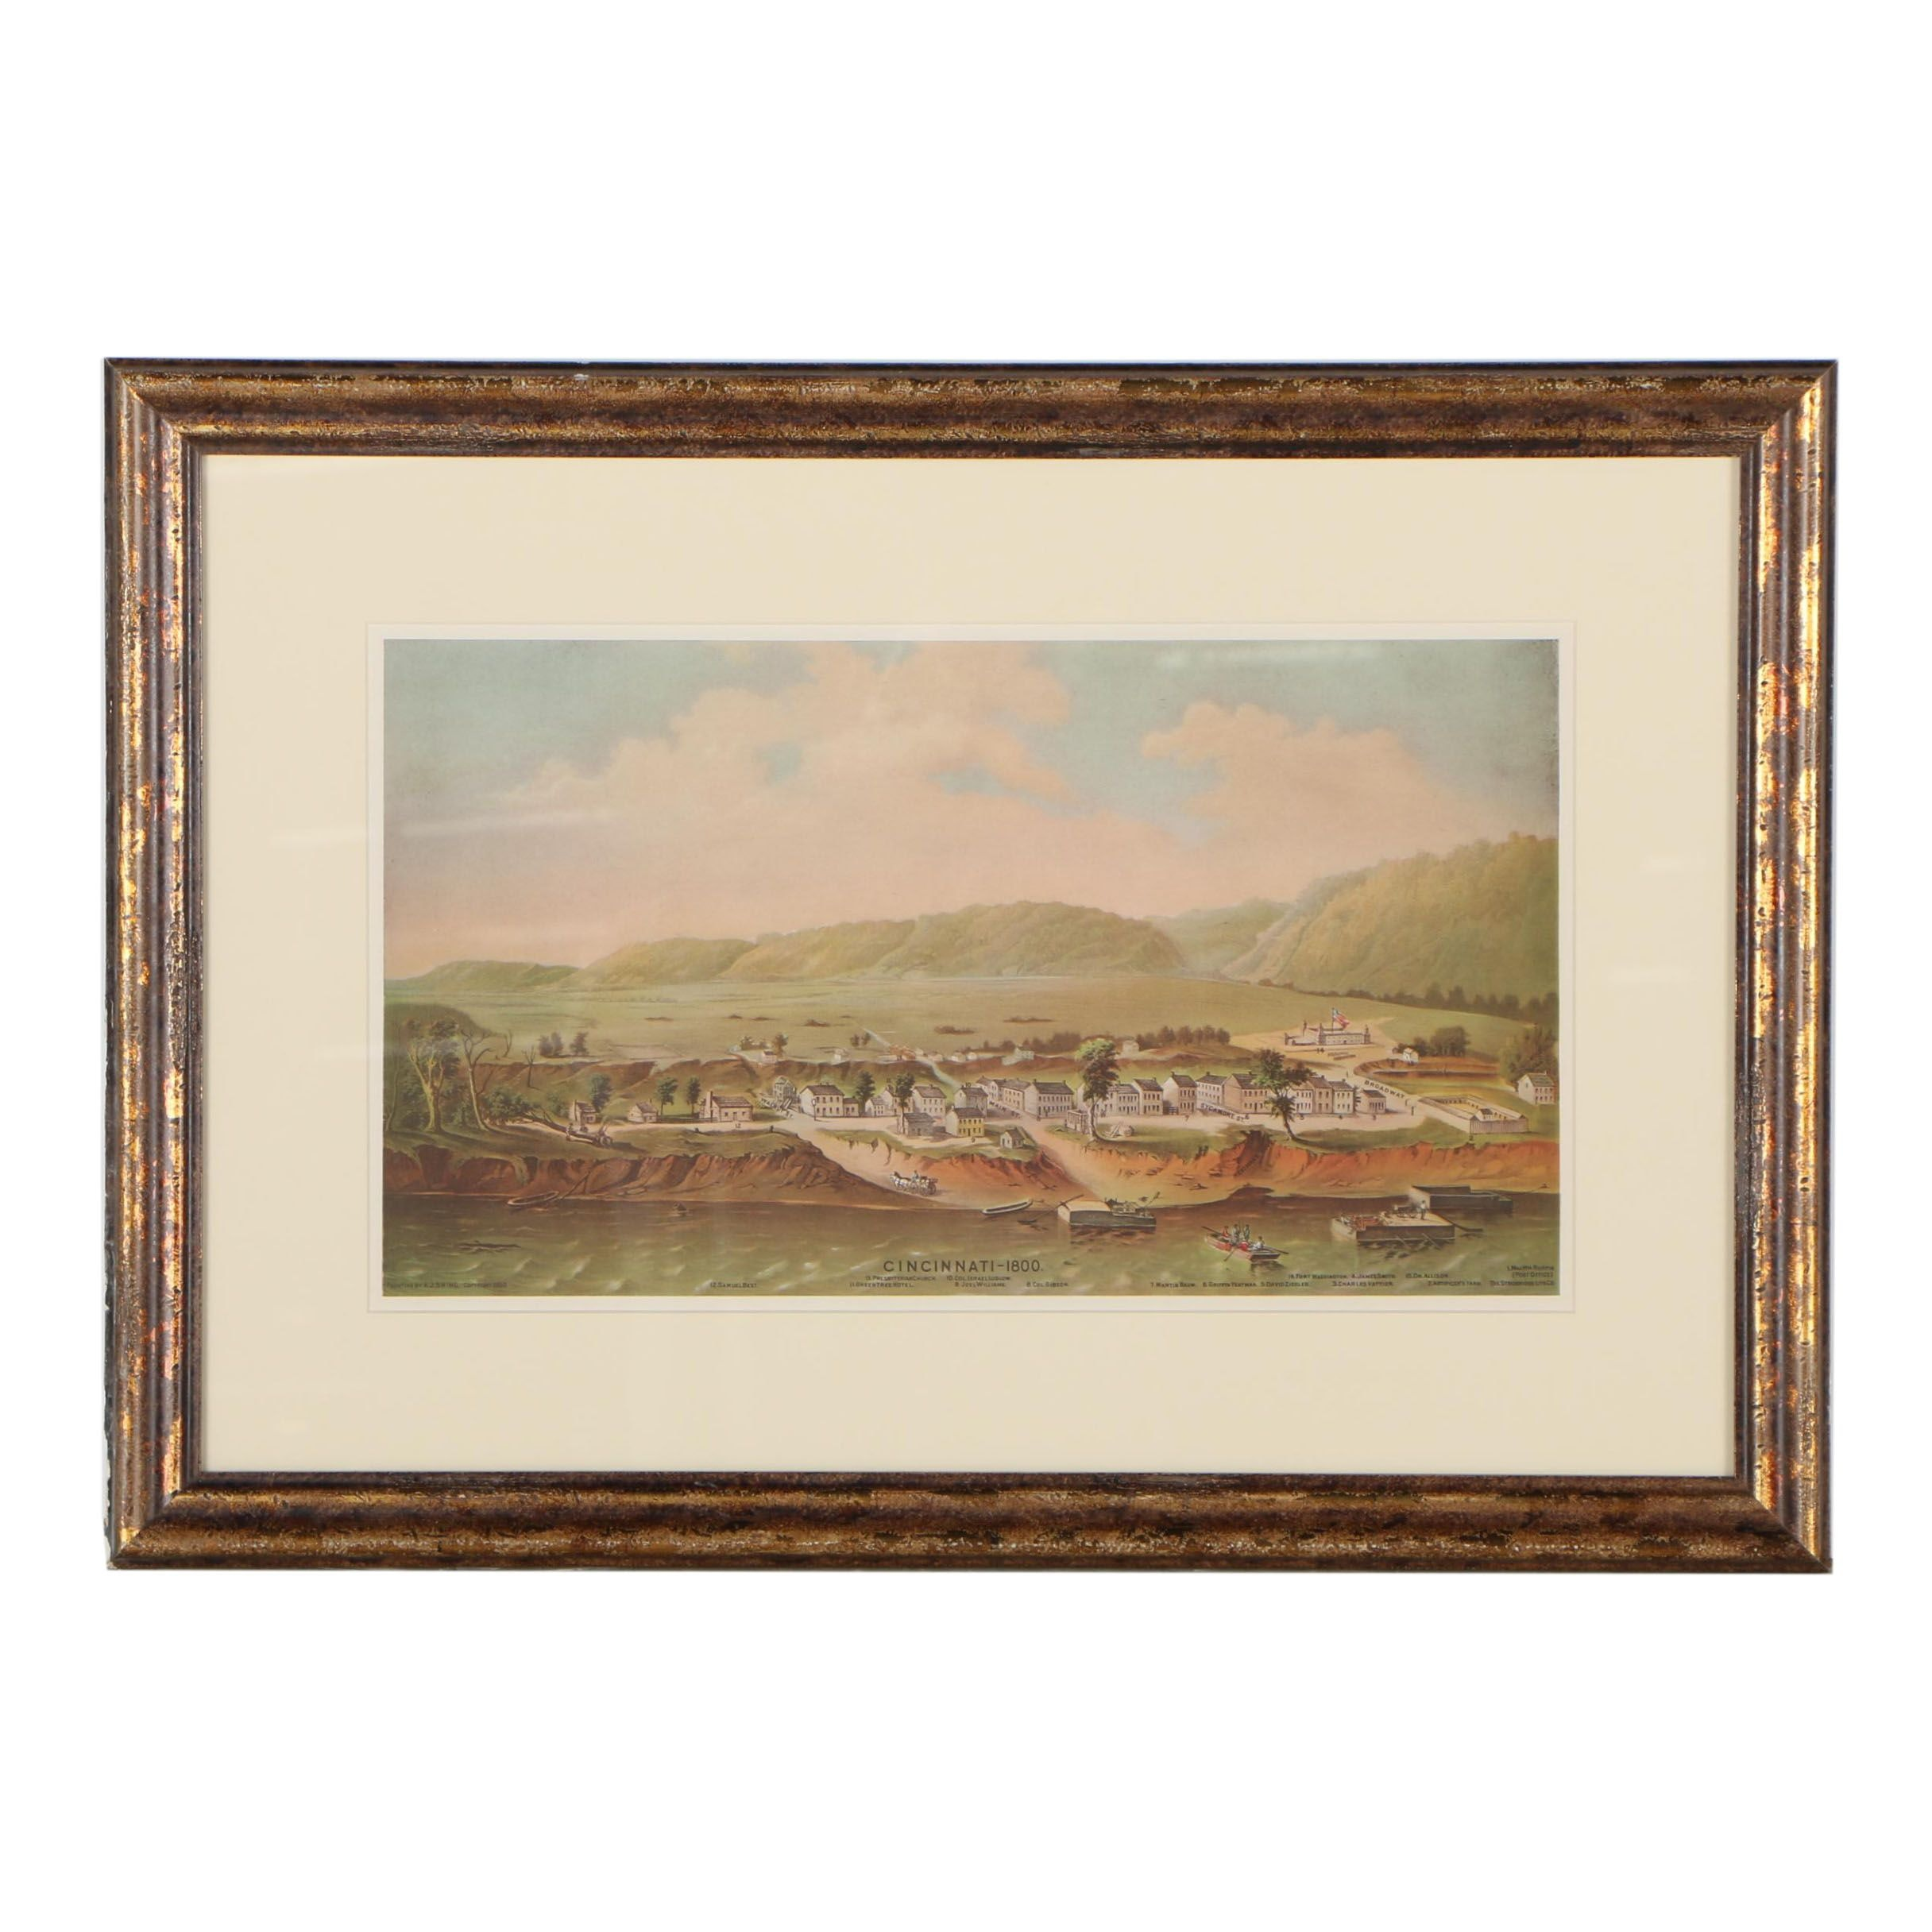 """Offset Lithograph after A. J. Swing and Strobridge Lith. Co. """"Cincinnati - 1800"""""""